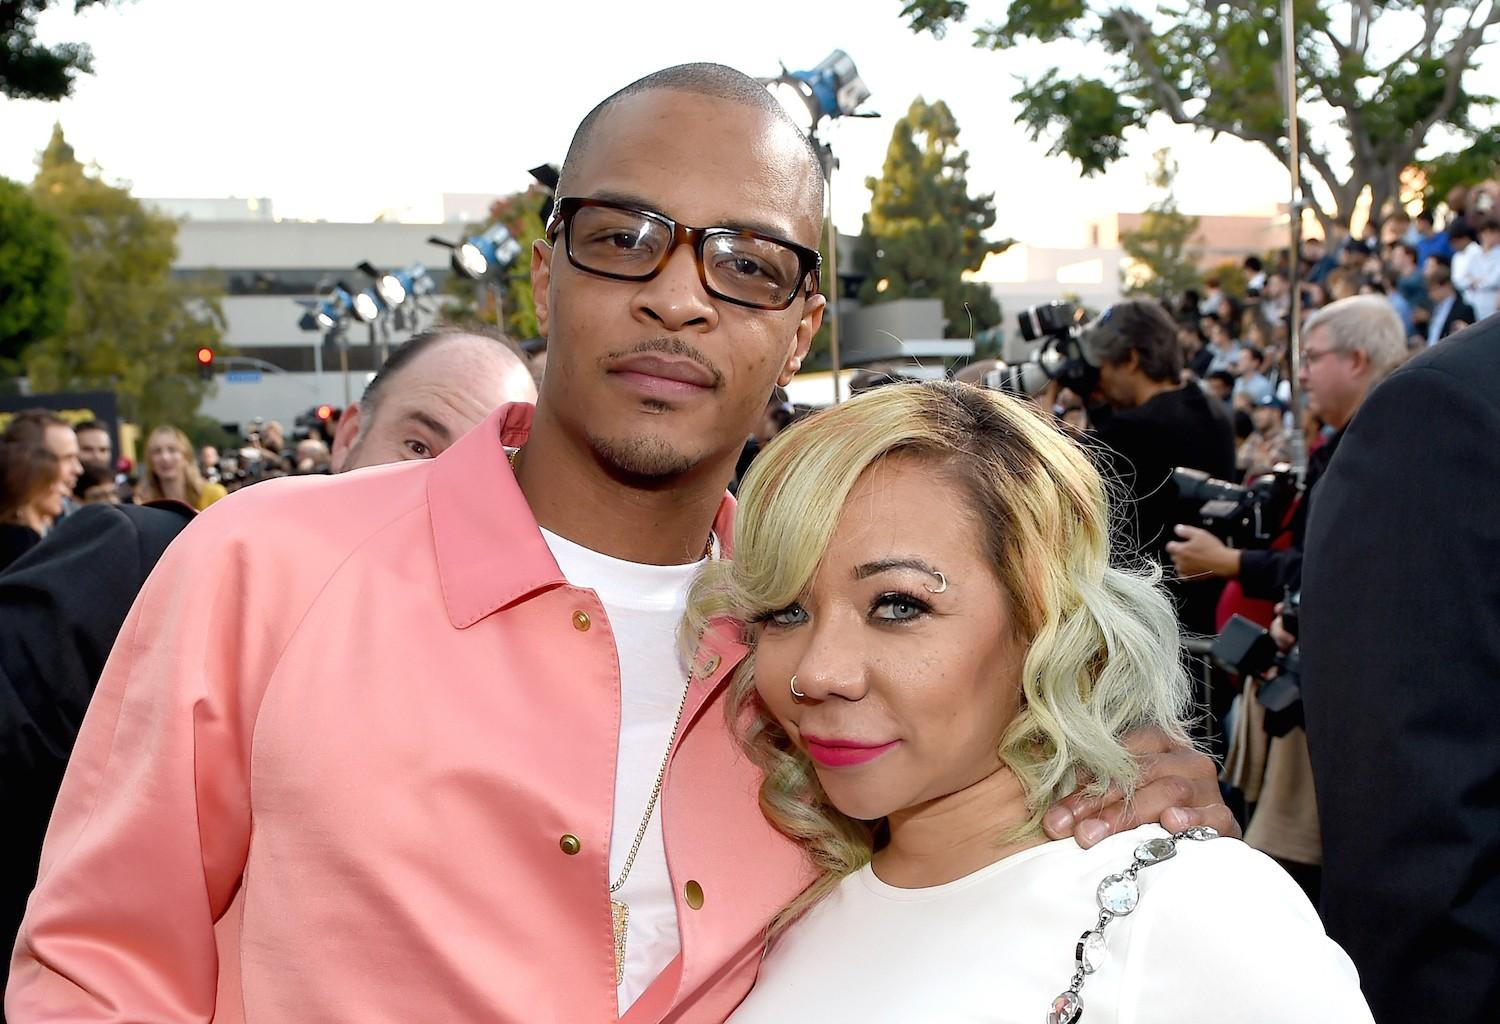 Tiny Harris Has A Special Kind Of Love With T.I. - See The Smile He Puts On Her Face